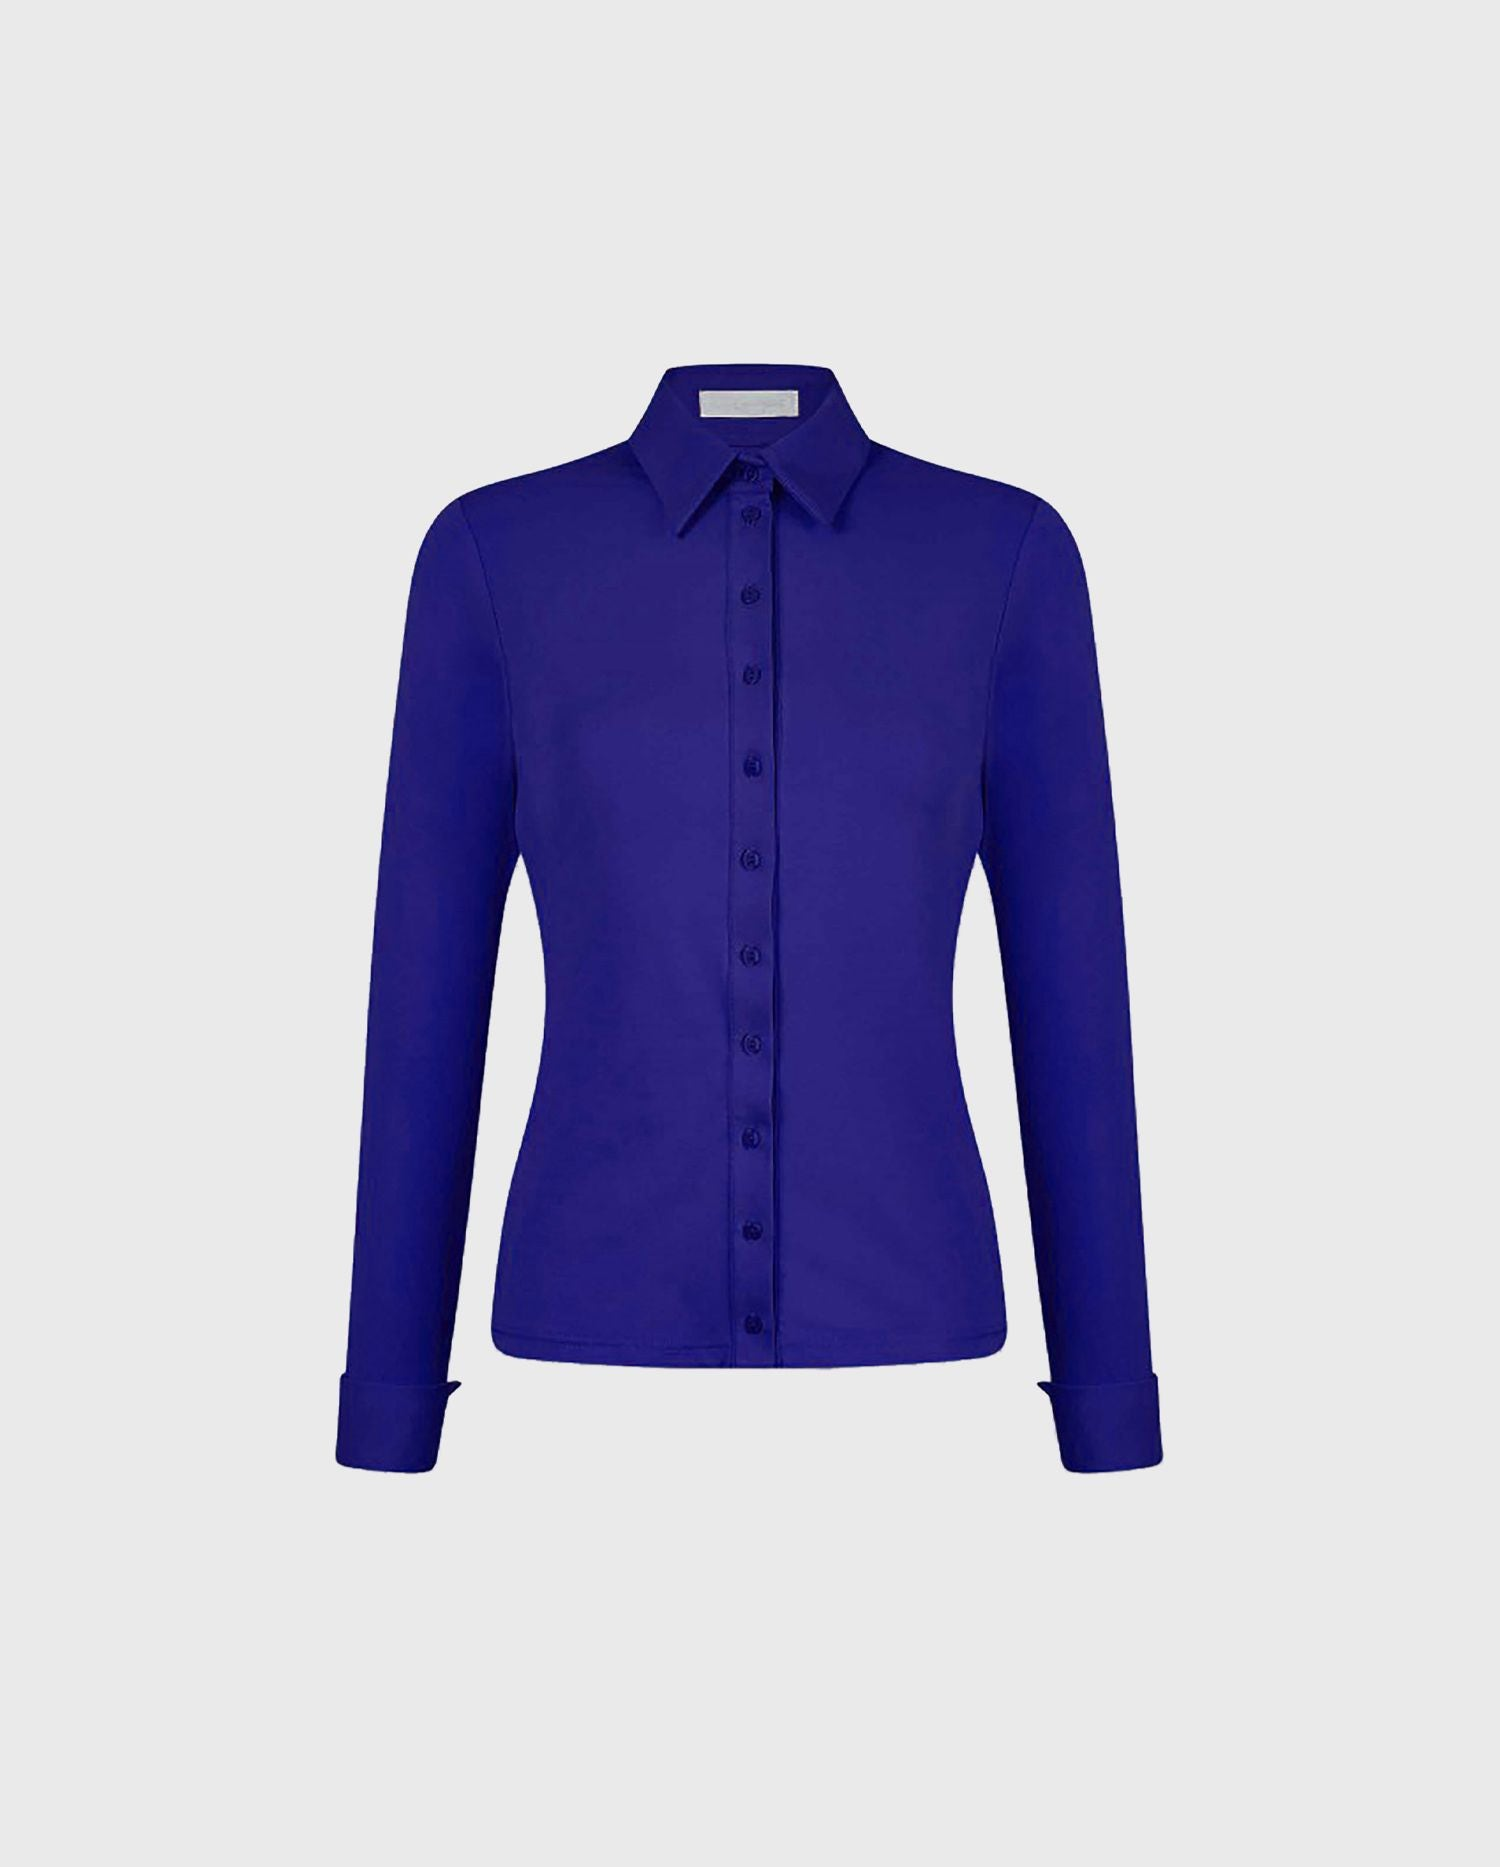 Add the ultra comfortable and vibrant Nuage shirt to your wardrobe for a vibrant pop of color.